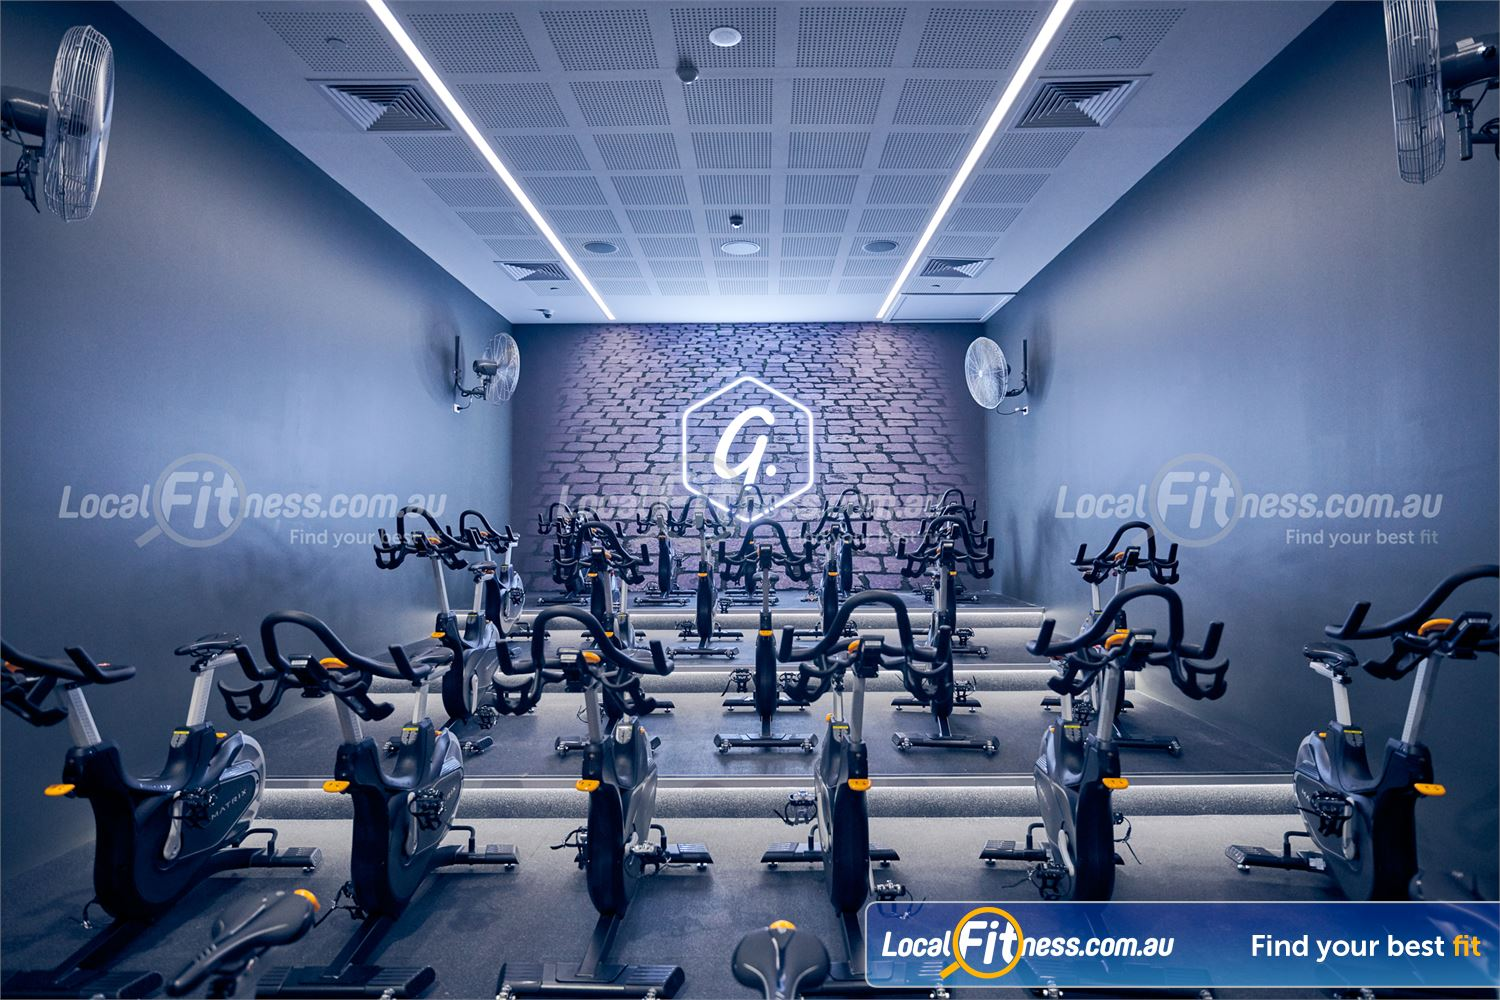 Goodlife Health Clubs Ringwood Goodlife Ringwood will include a dedicated cycle studio.